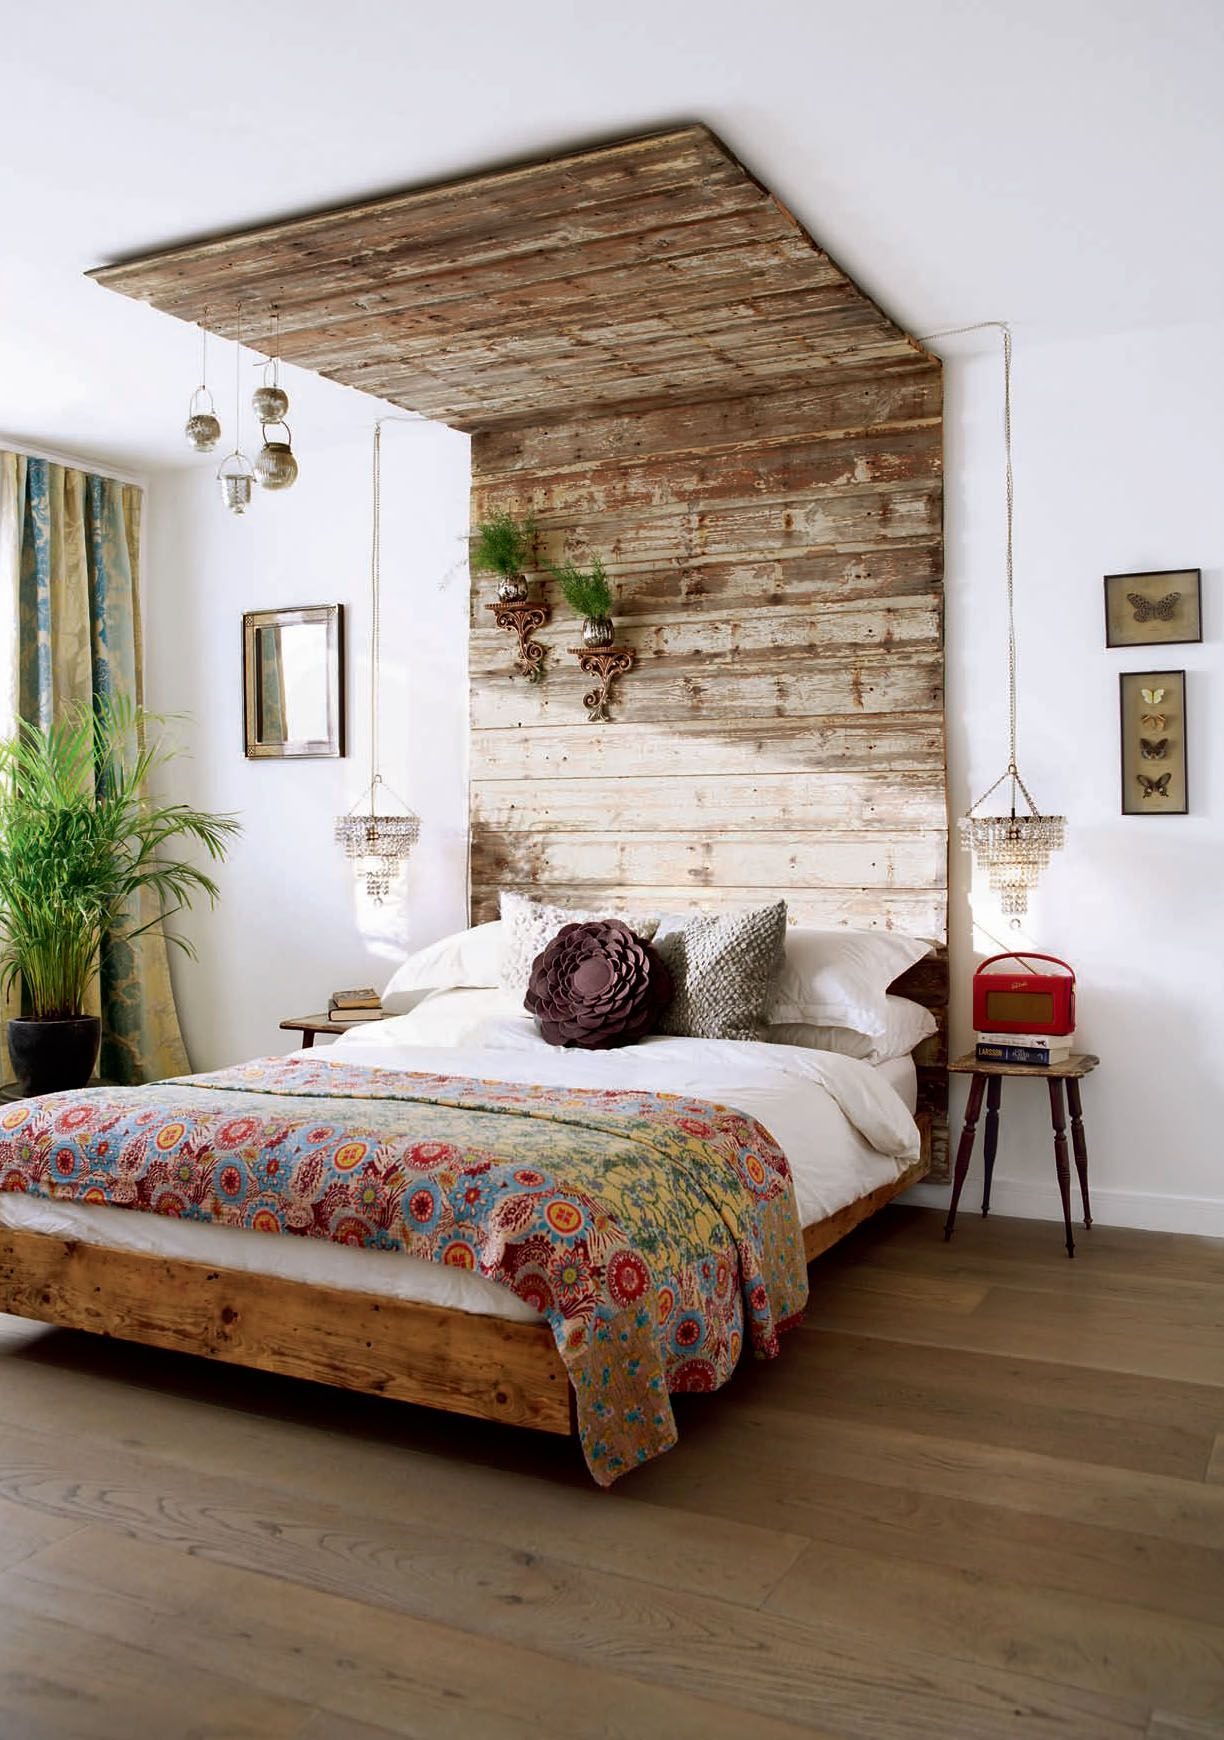 com the ideas ultimate refreshed fresheddesigns blog diy hanging headboard guide designs more